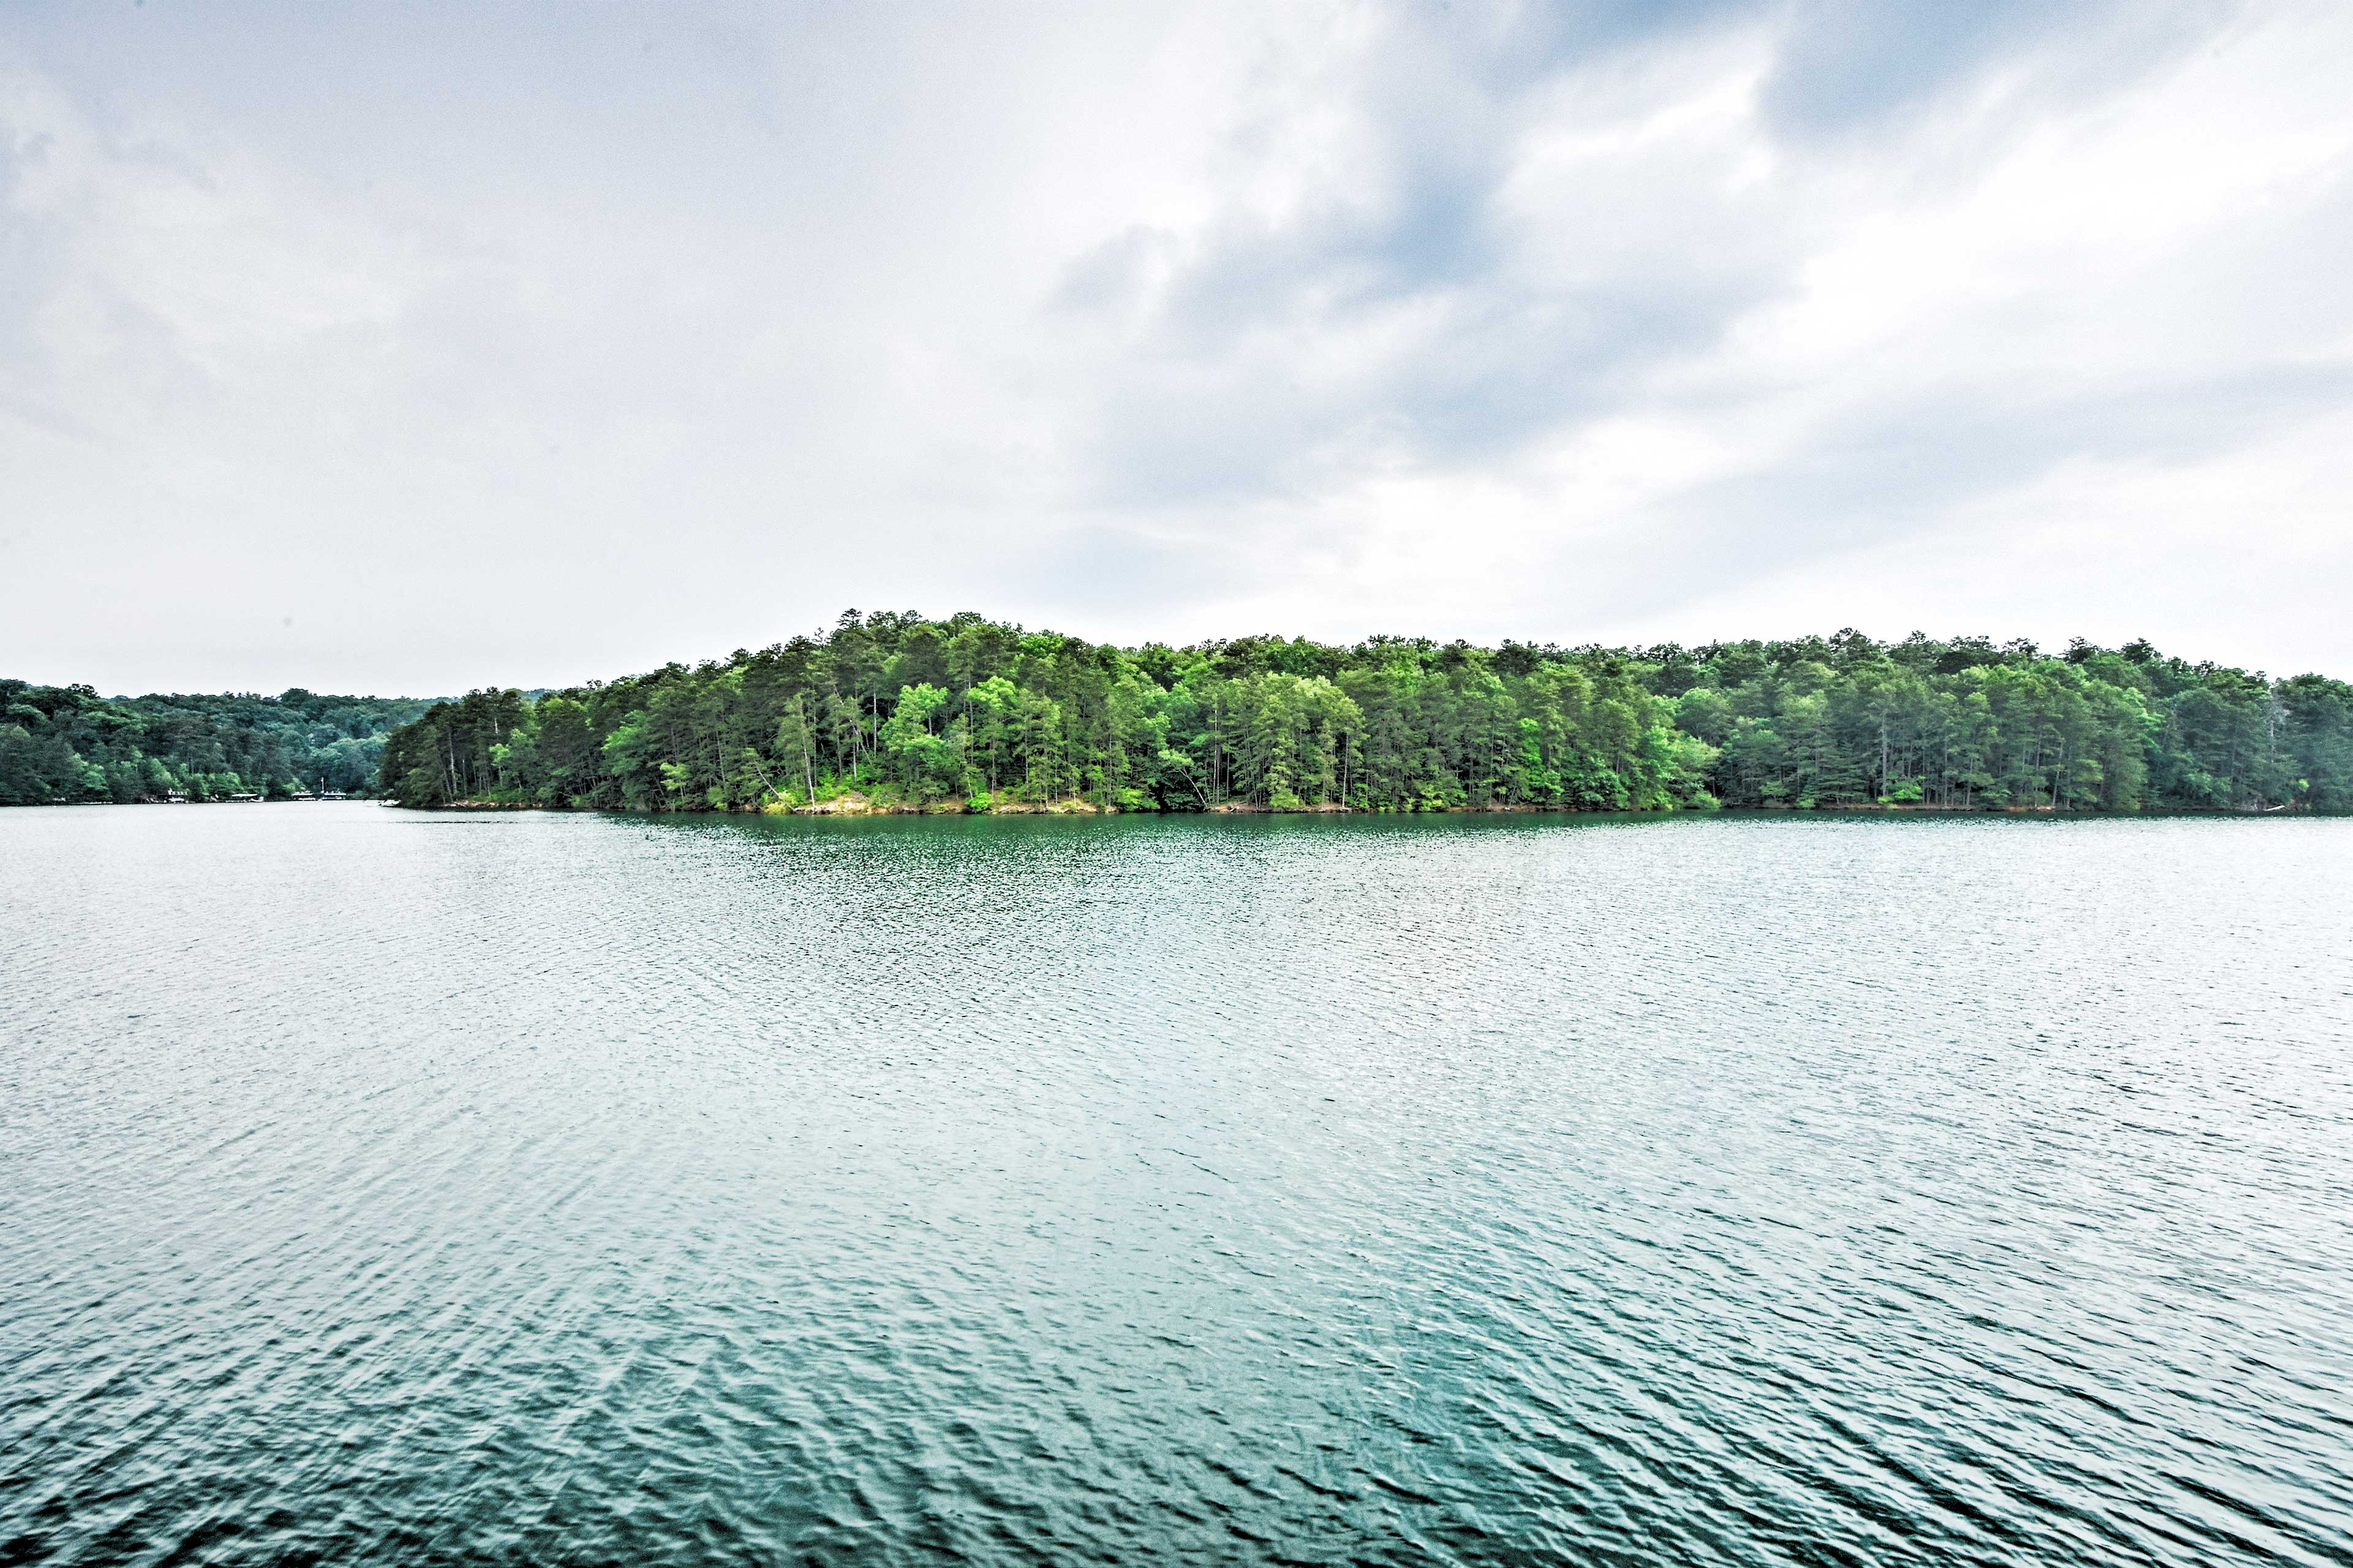 Dreaming of sunny days on Blue Ridge Lake? Book now!